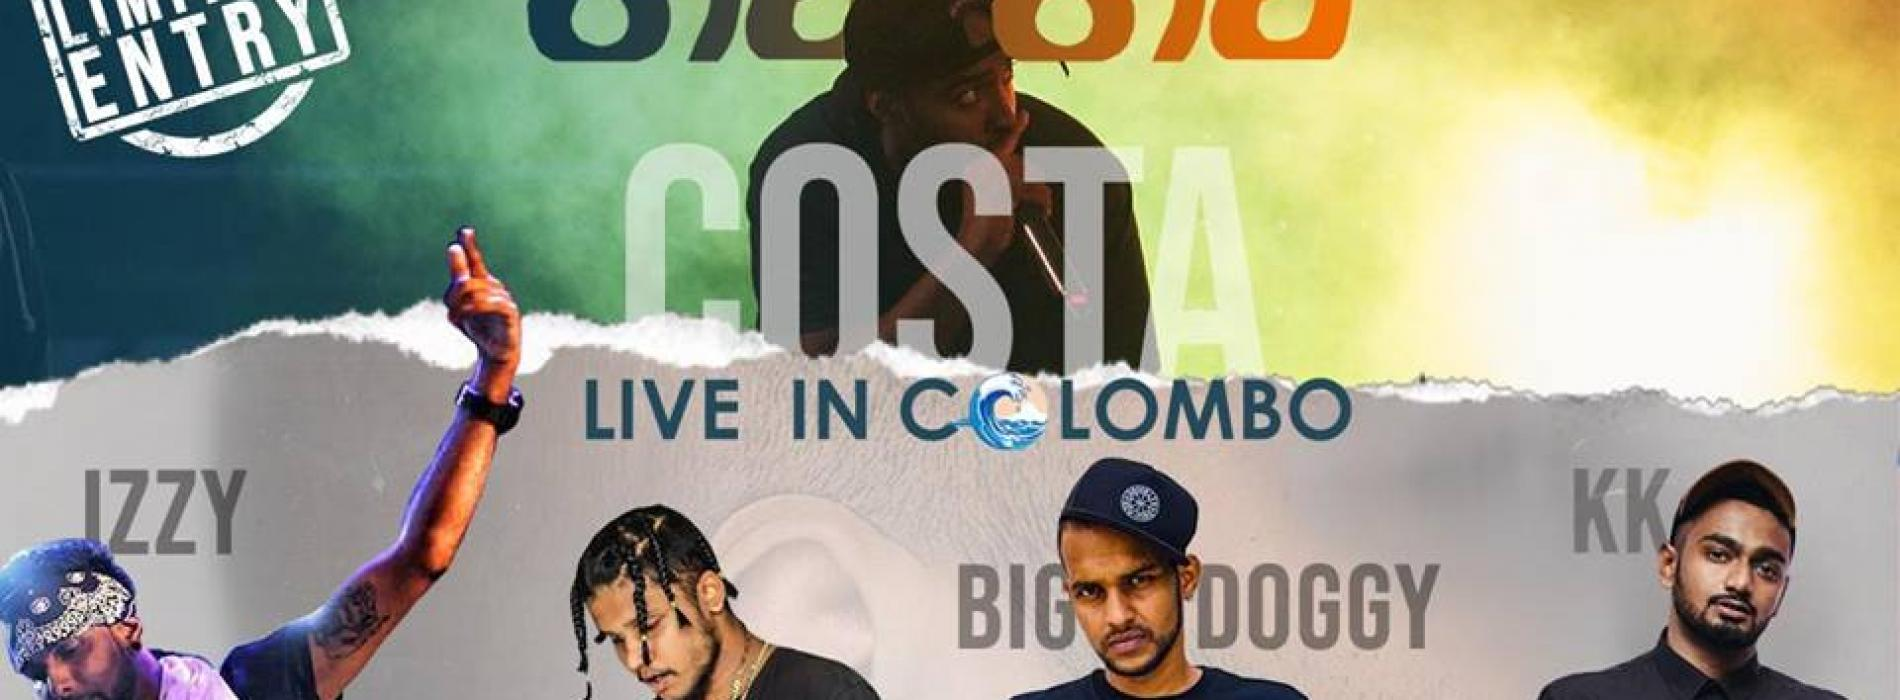 Costa Live In Colombo